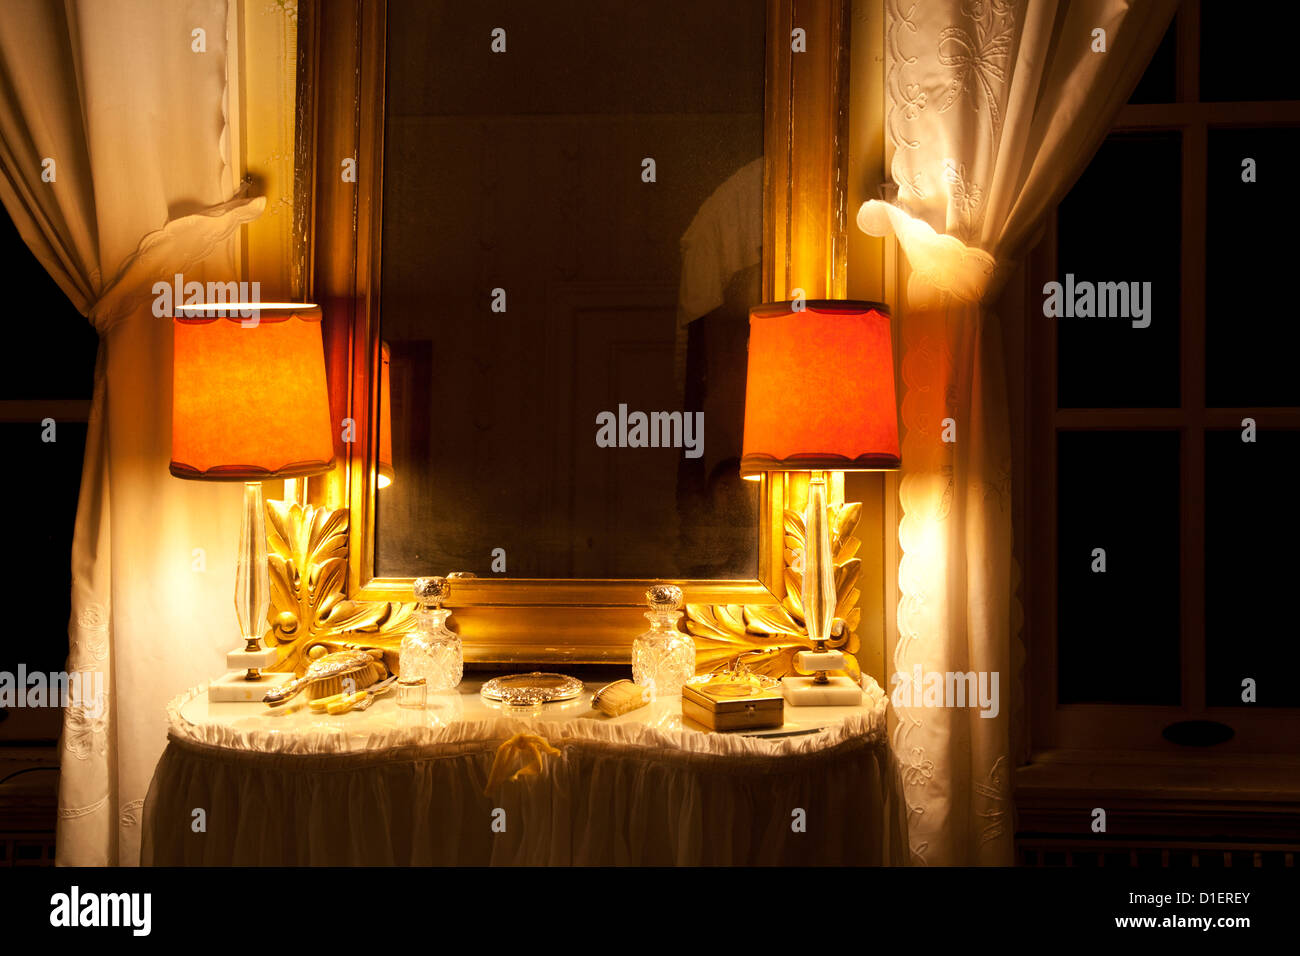 Dressing Table with Lights and Curtains - Stock Image